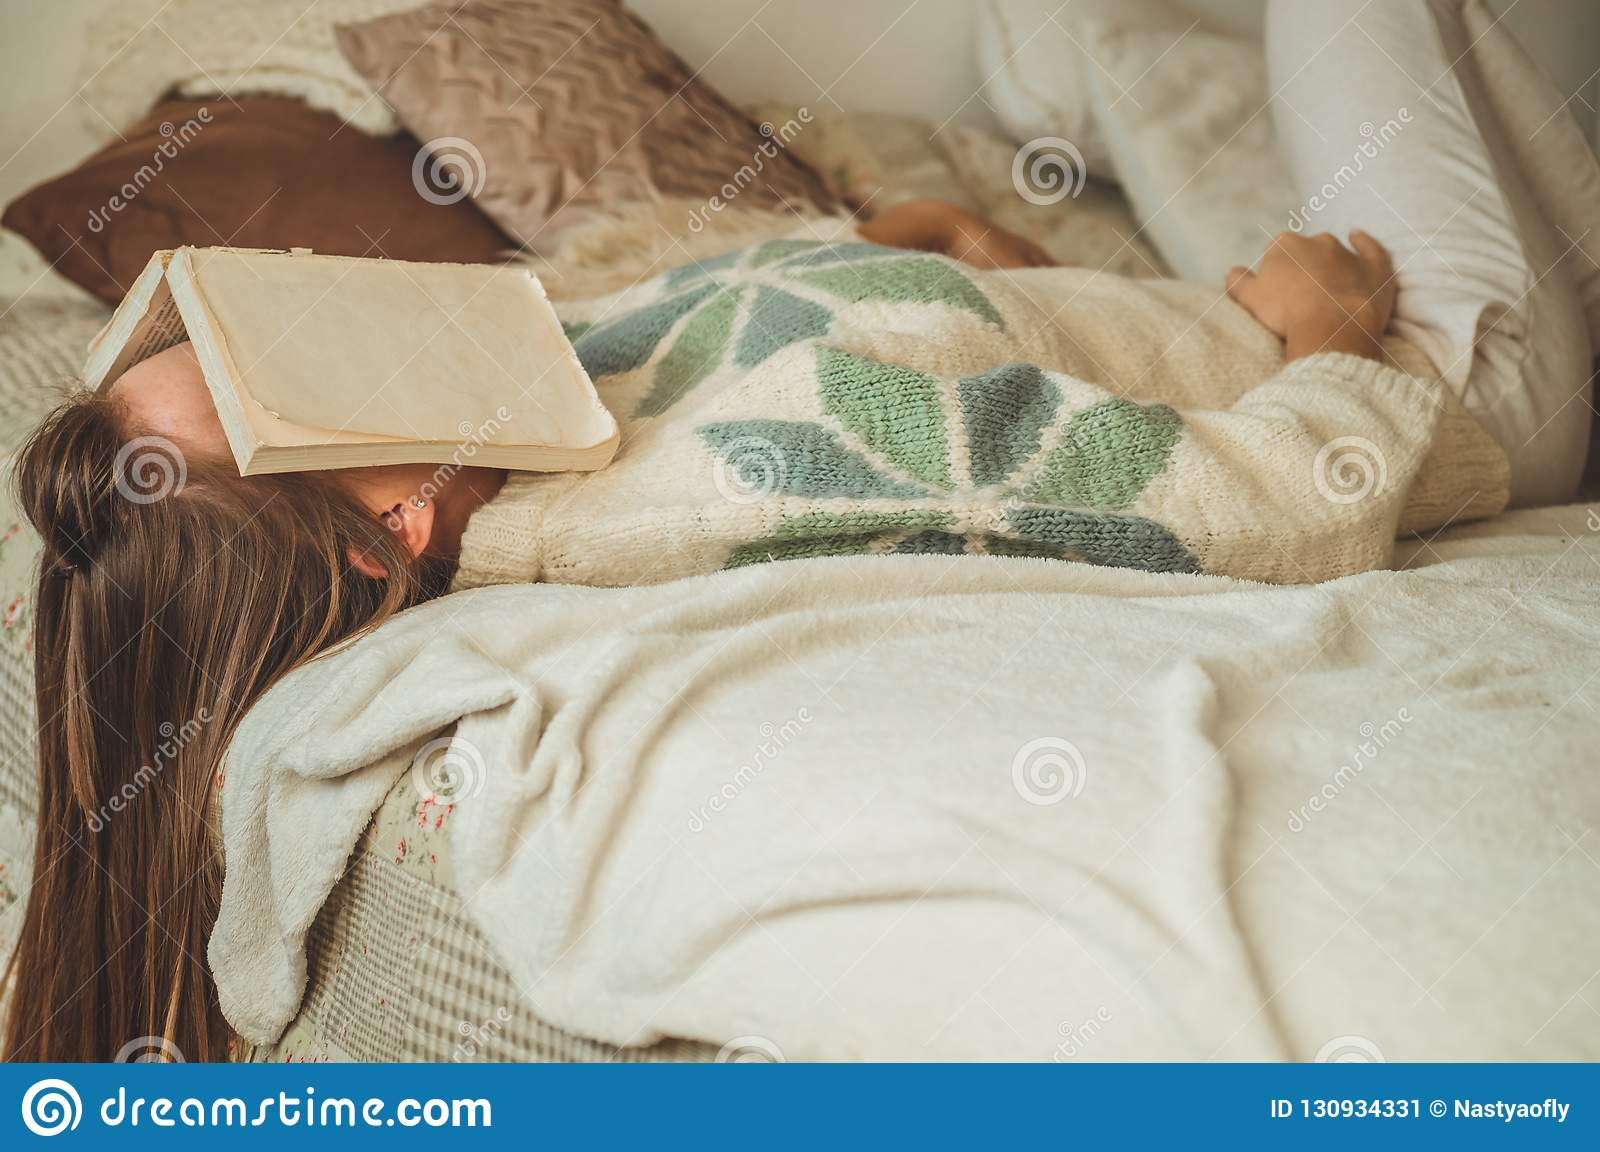 Beautiful young woman sleeping on bed with book covering her face because reading book with preparing exam of college